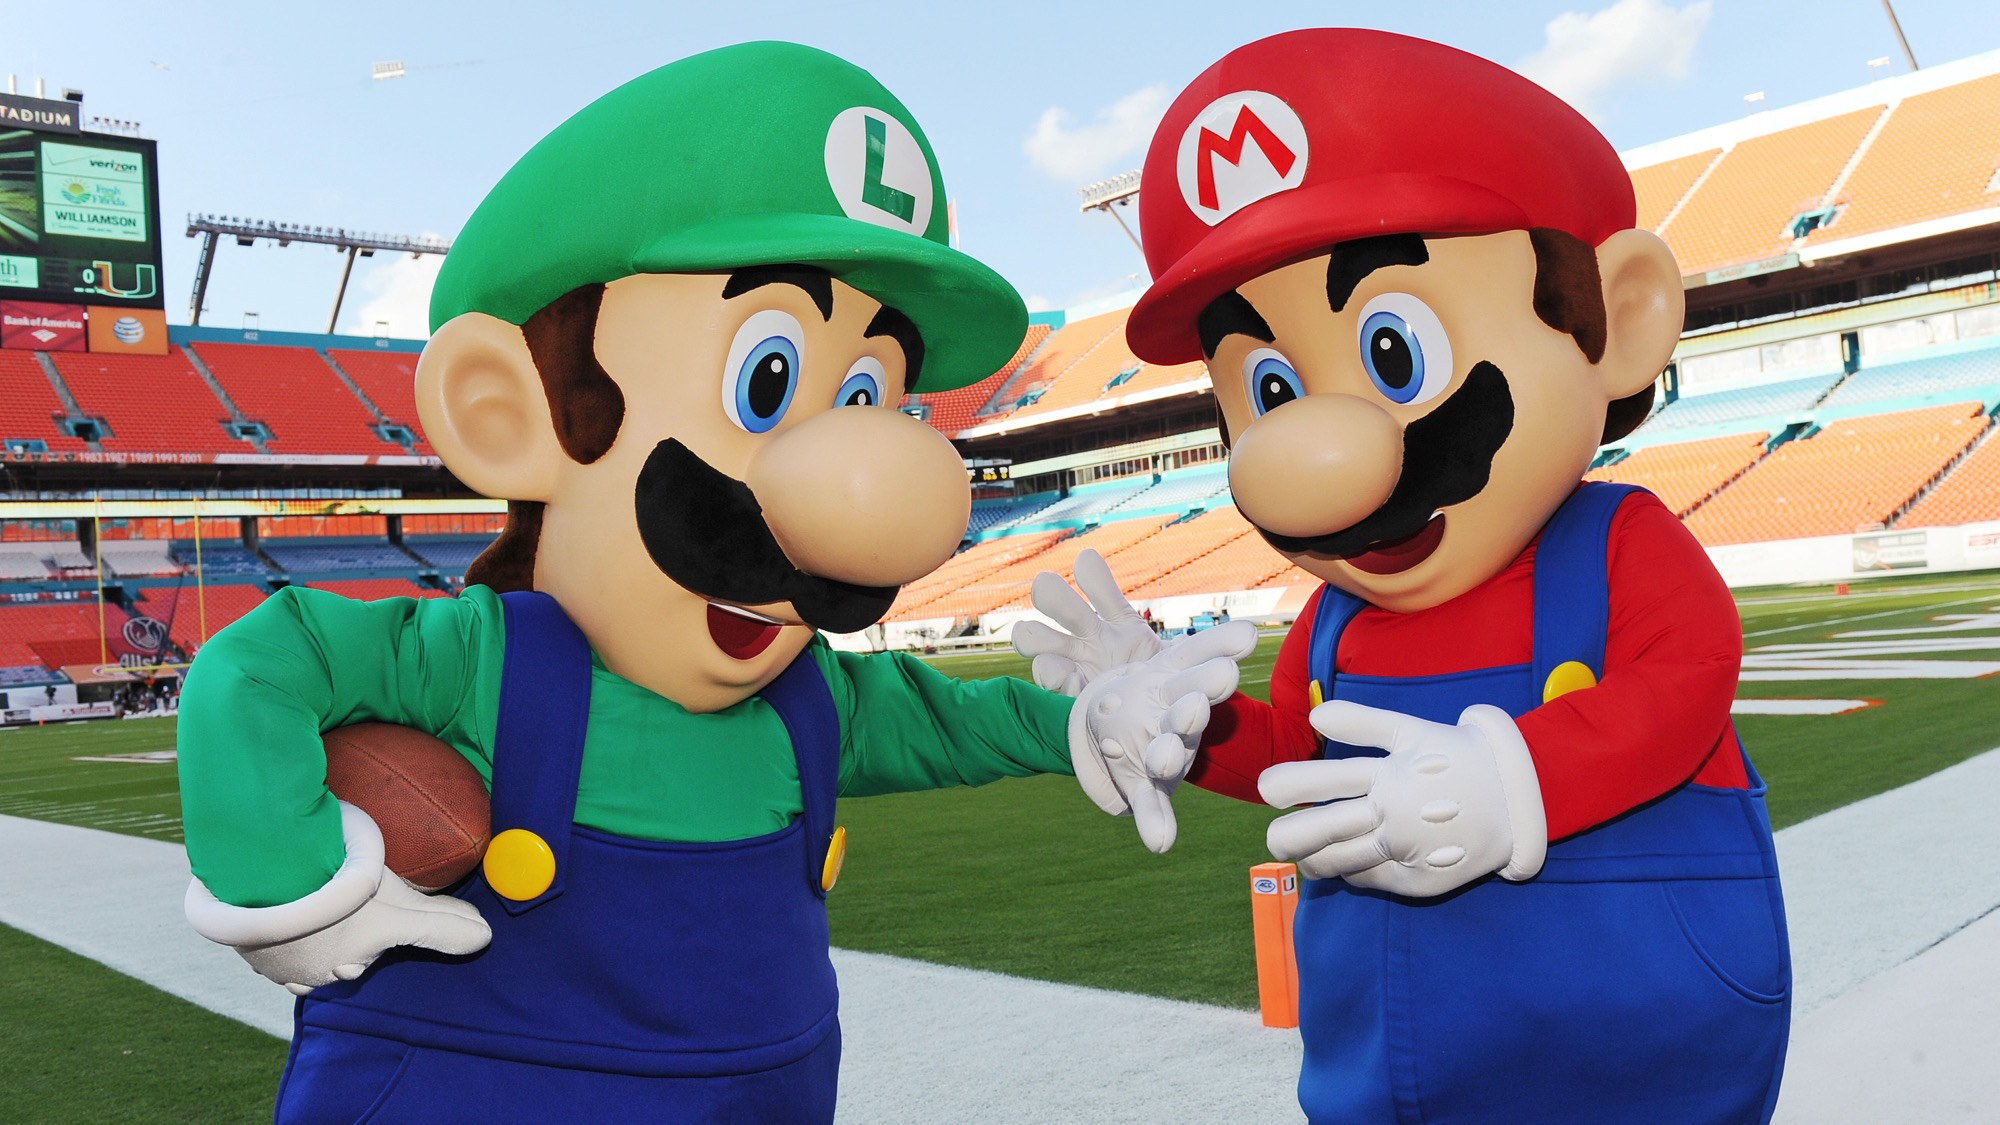 IMAGE DISTRIBUTED FOR NINTENDO - Mario and Luigi take the field at Sun Life Stadium before the face-off between Florida State and University of Miami on Nov. 15, 2014. The two video game icons were in town to show football fans Super Smash Bros. for Nintendo 3DS and the forthcoming Super Smash Bros. for Wii U. Nintendo of America is bringing these all-star brawling games to college campuses across the country this fall as a part of the College Tailgate Tour.(Photo By Jeff Daly/Invision for Nintendo/AP)